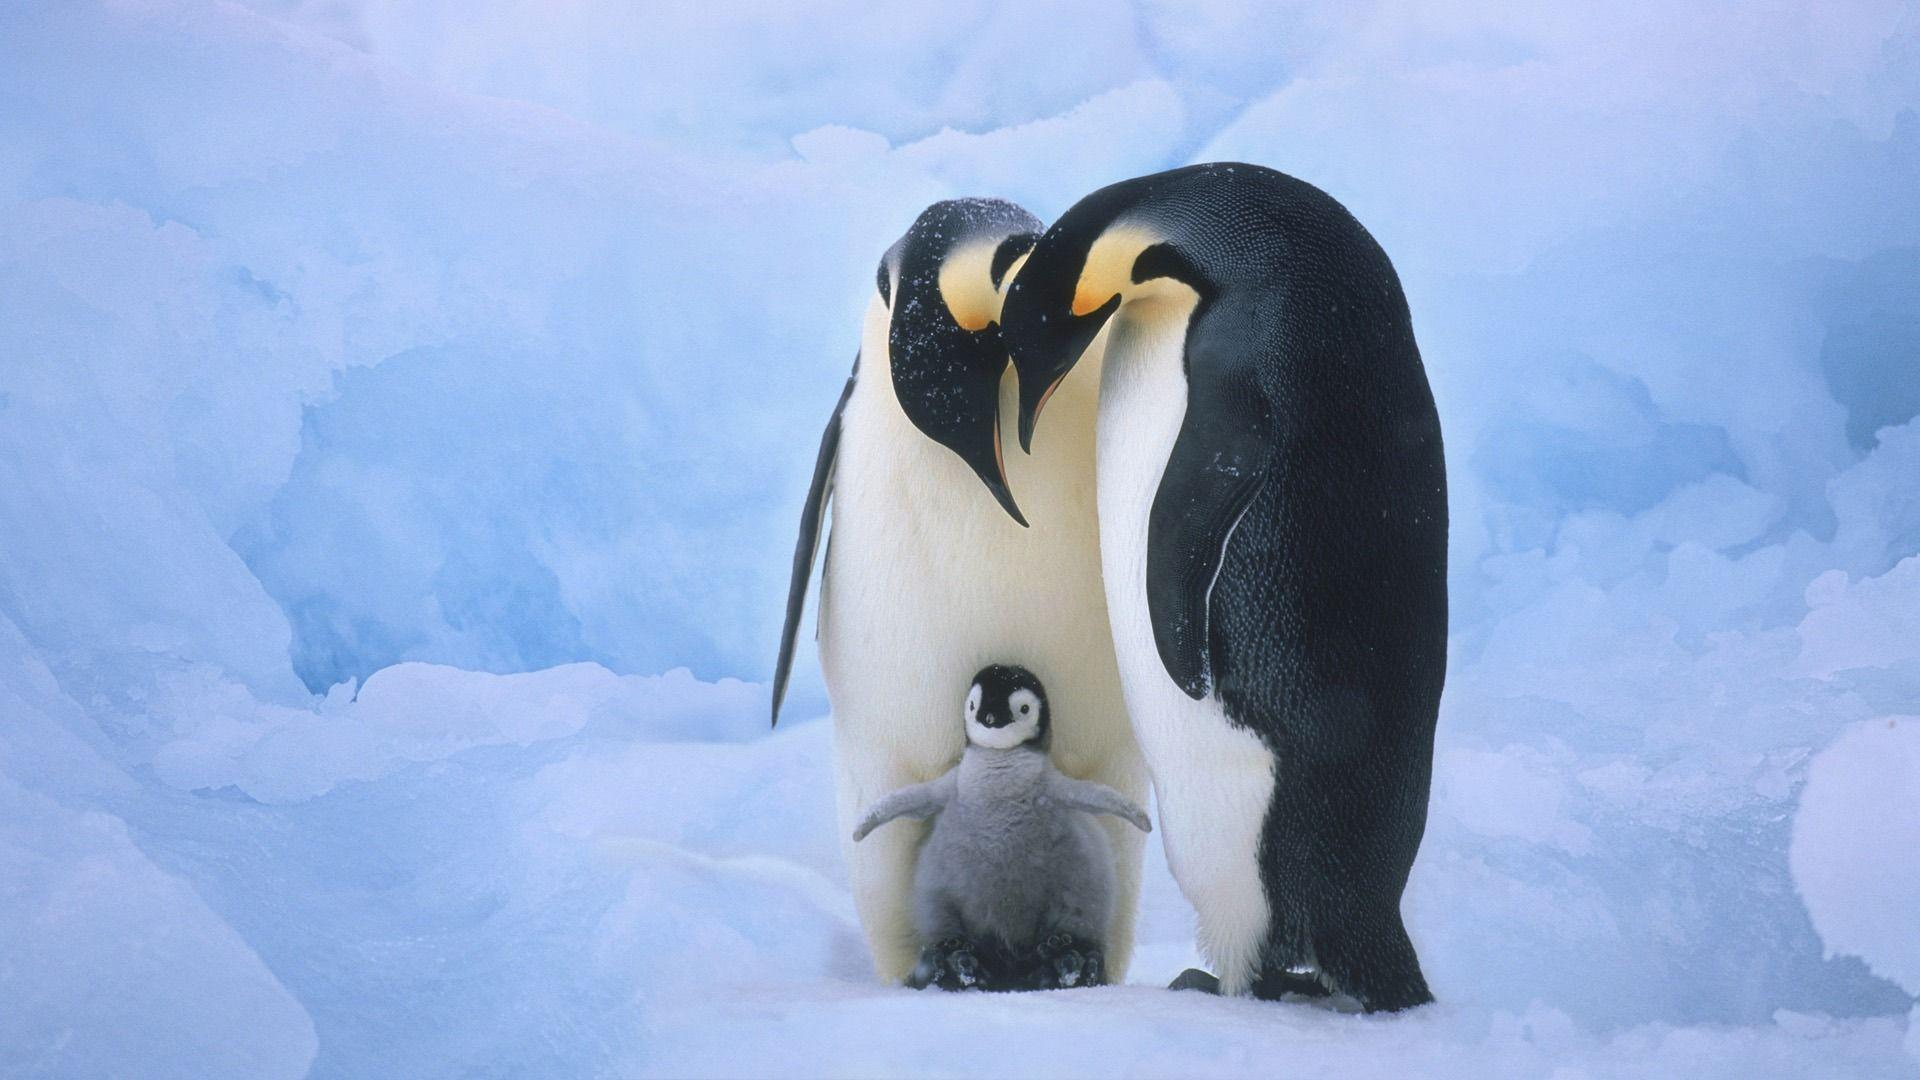 Cute Penguin Backgrounds 1920x1080